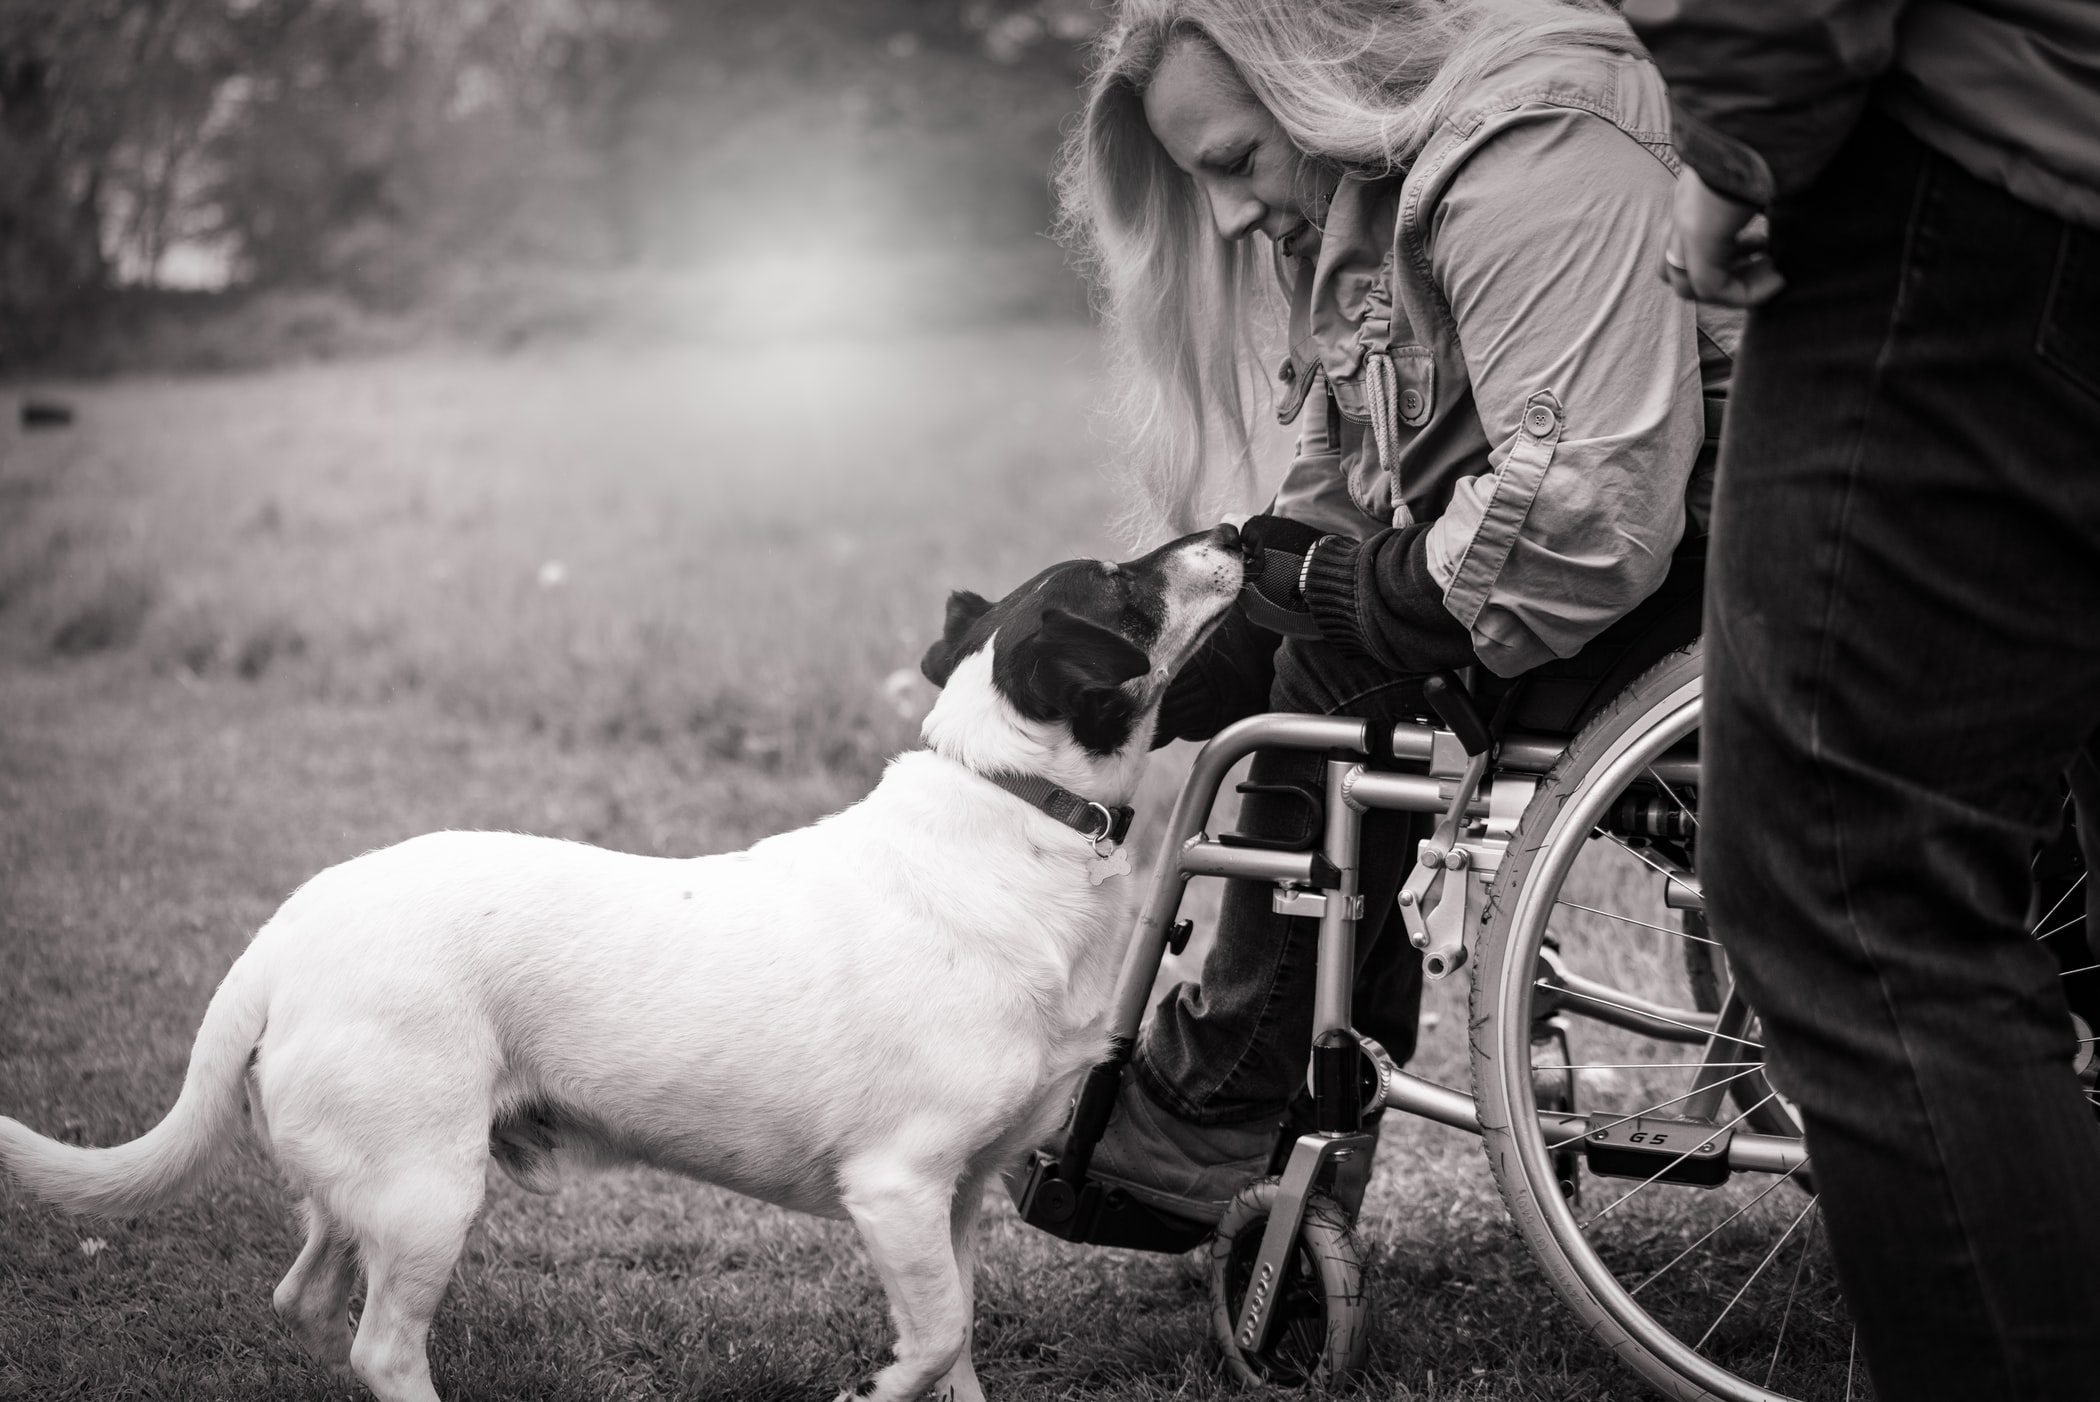 Black and white image of a woman in a wheelchair with a dog